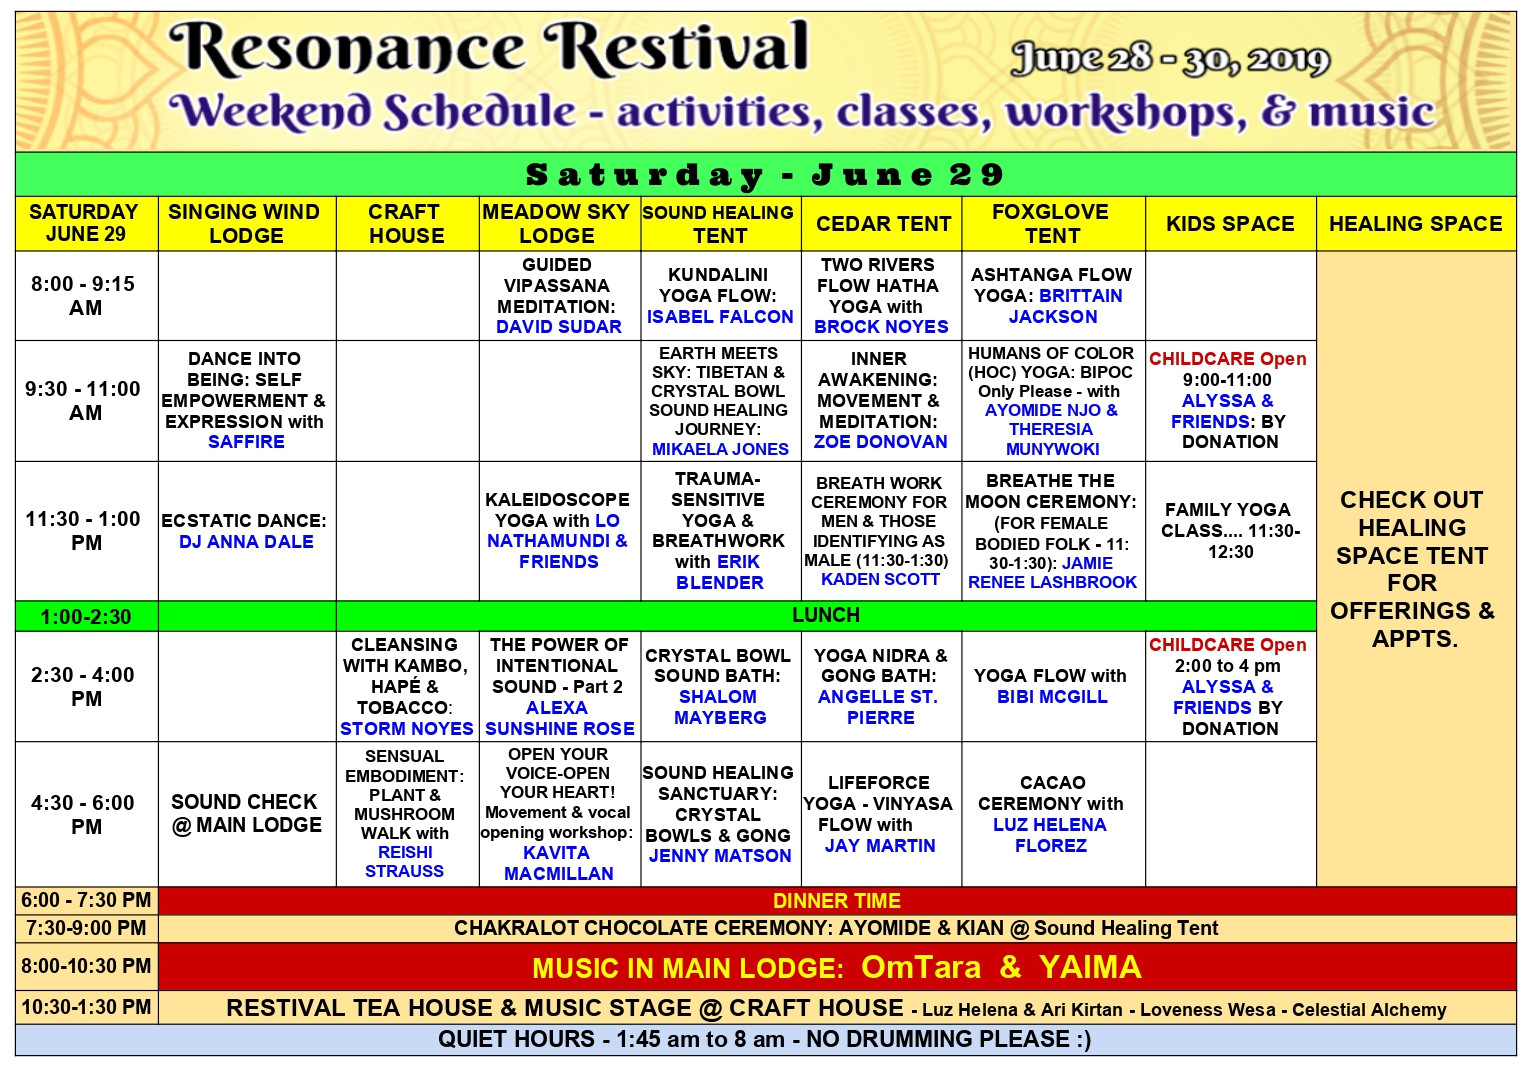 RESTIVAL 2019 SCHEDULE - SATURDAY.jpg